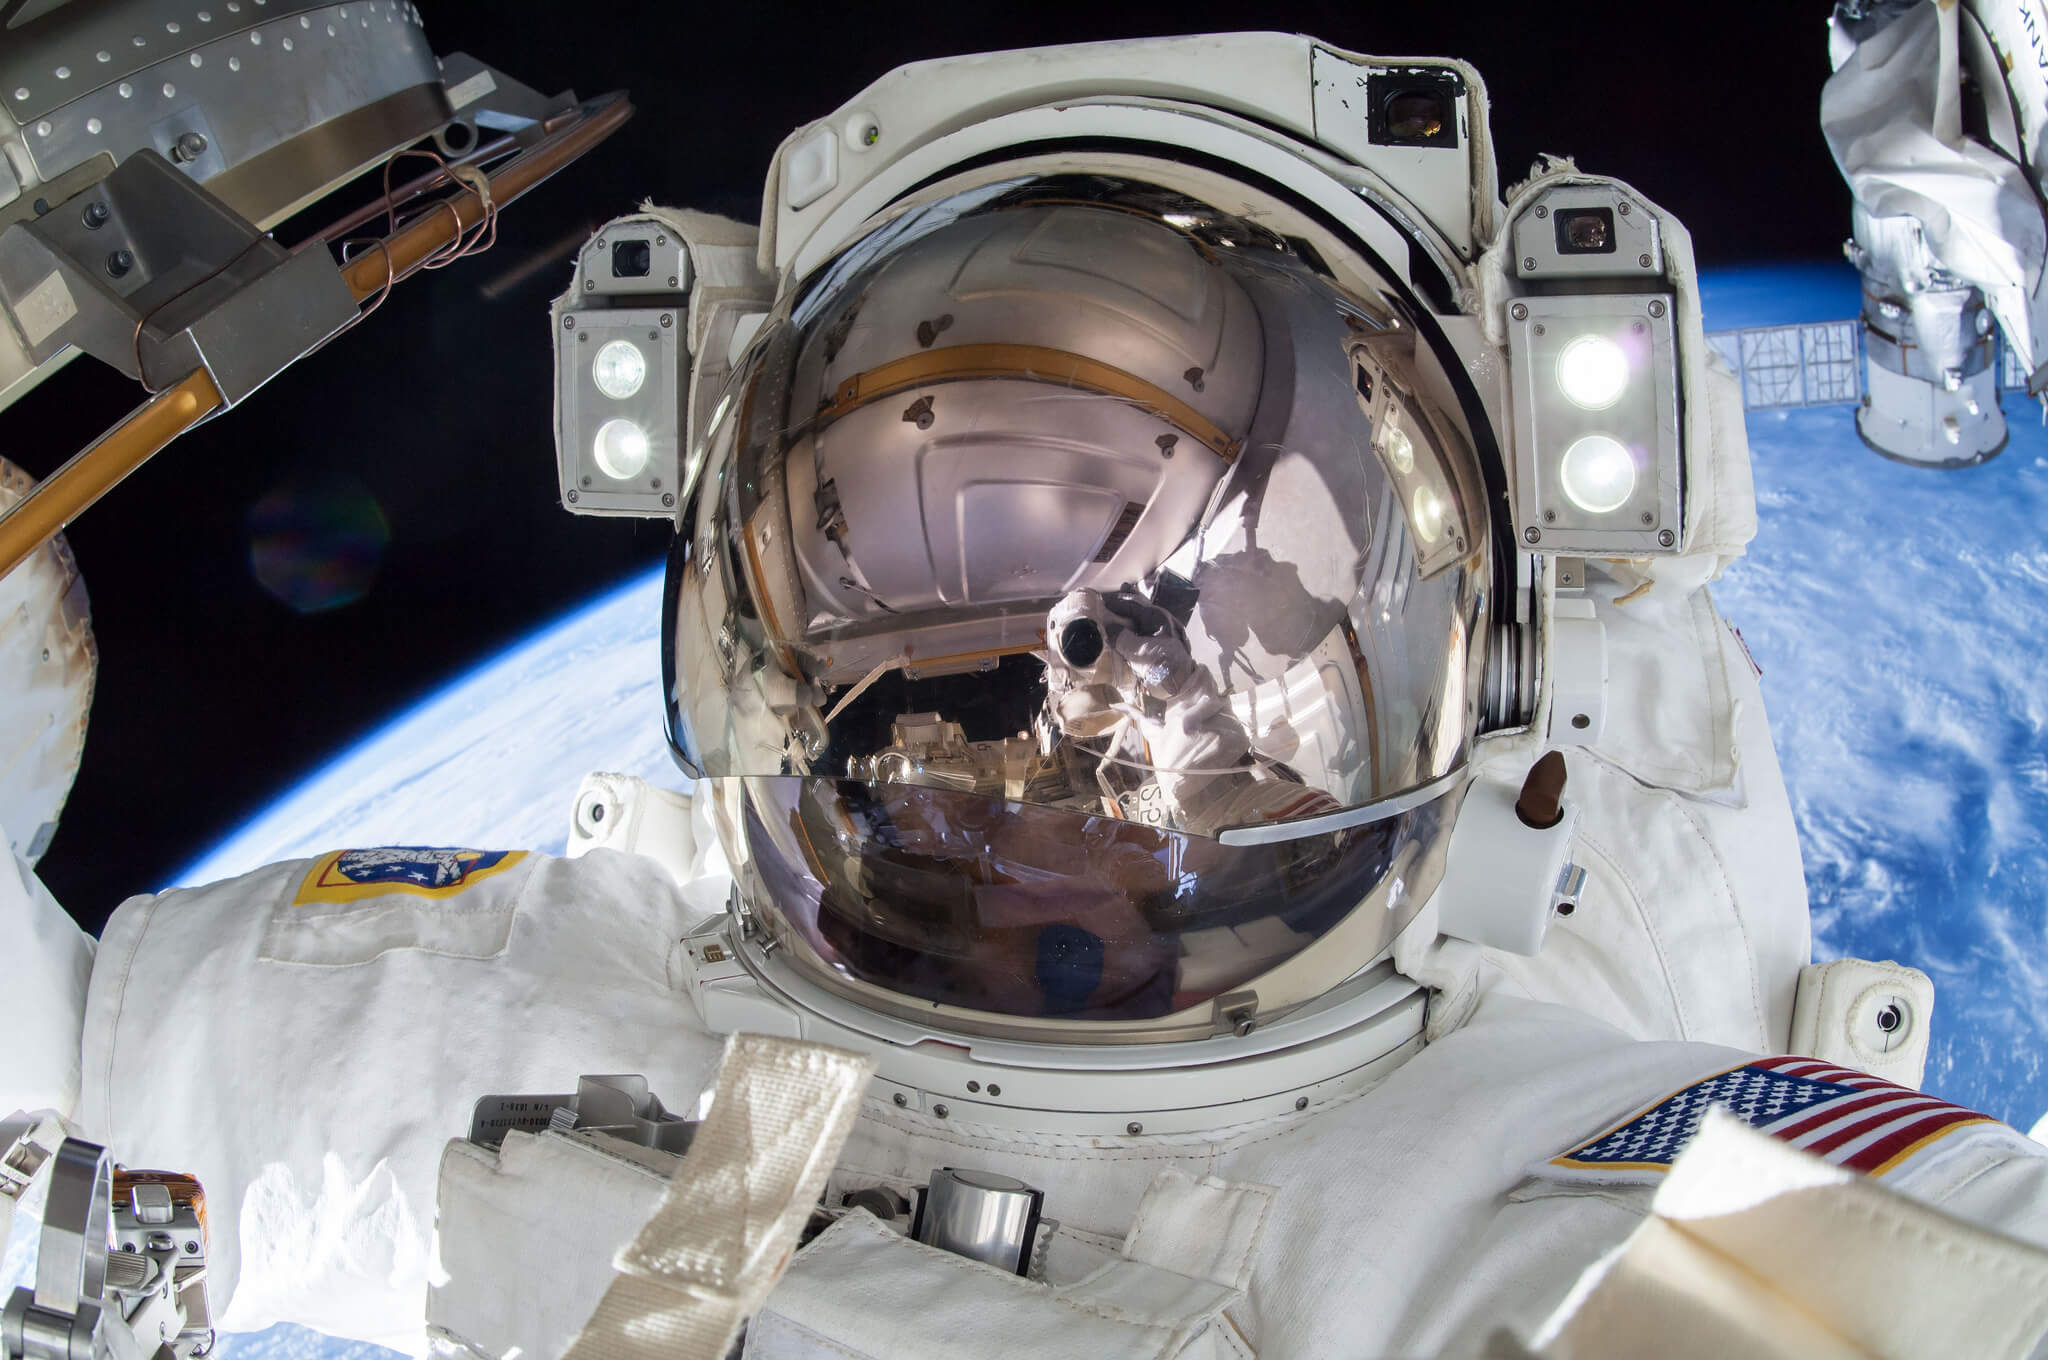 This is why the air force academy is leading the way in space